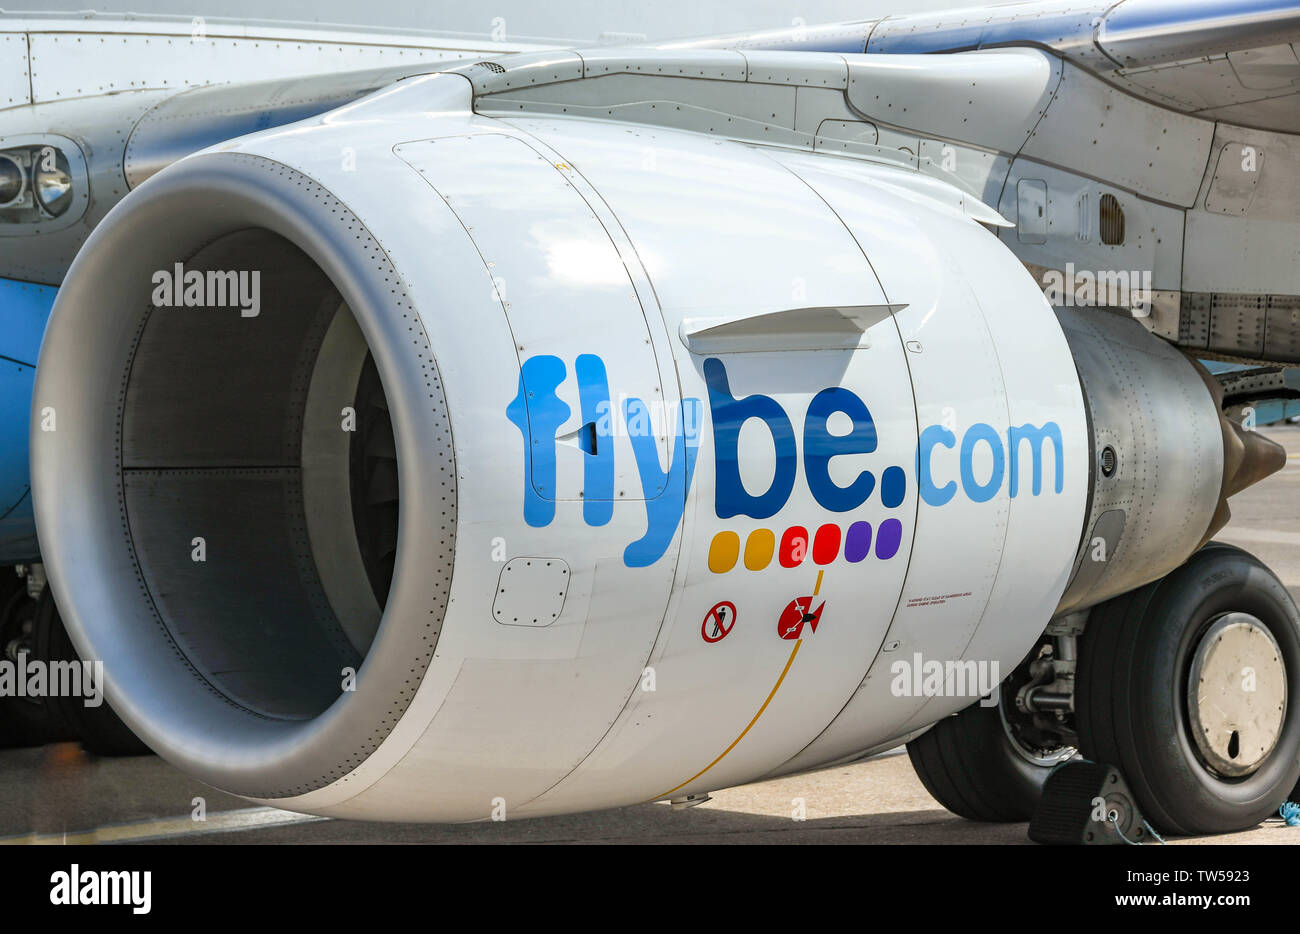 Engine Cowling Stock Photos & Engine Cowling Stock Images